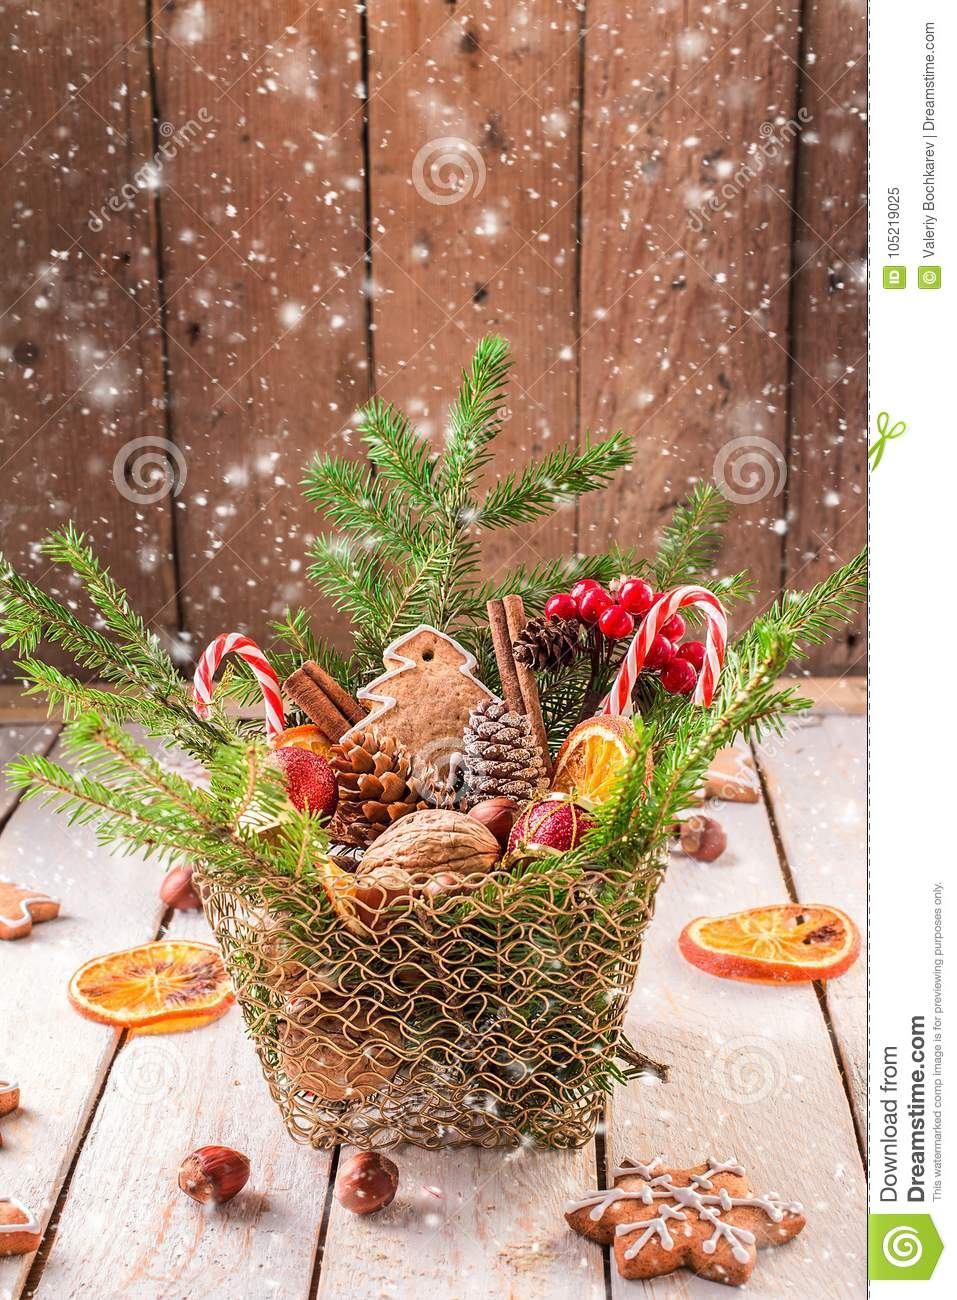 Christmas Decorations On A White Wooden Rustic Table Stock Image